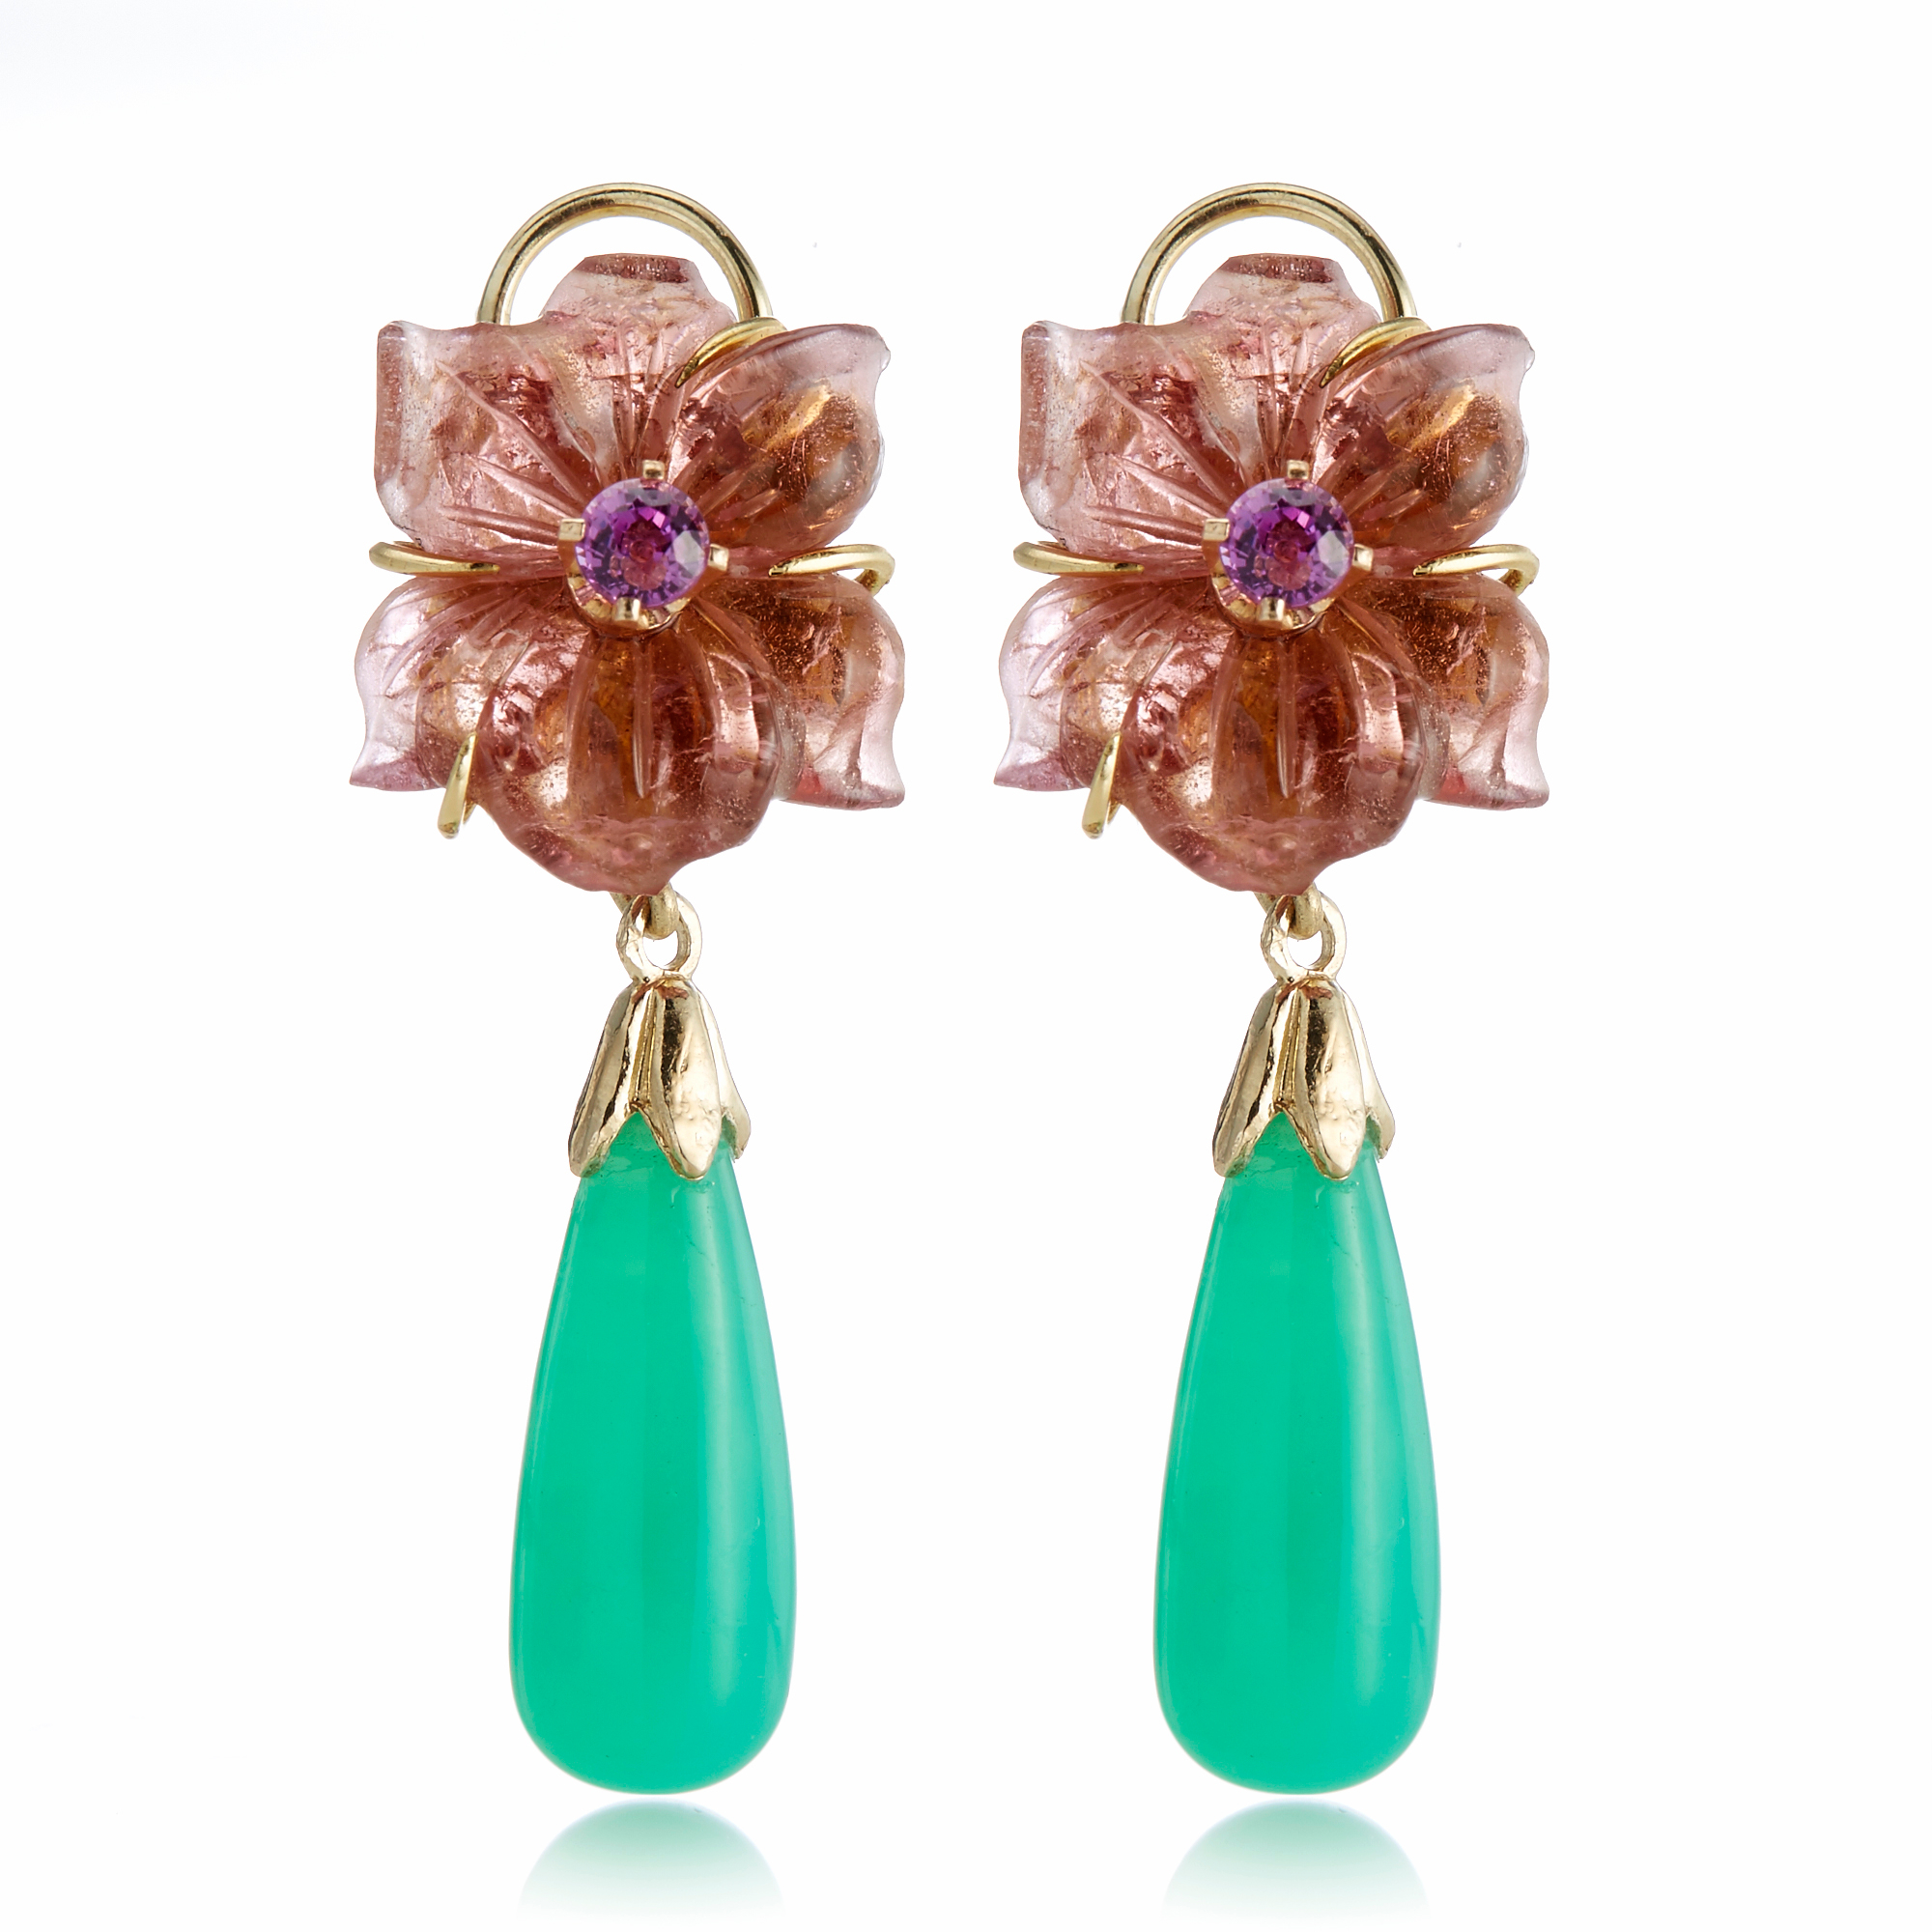 Russell Trusso Tourmaline Flowers With Sapphires & Chrysoprase Drops